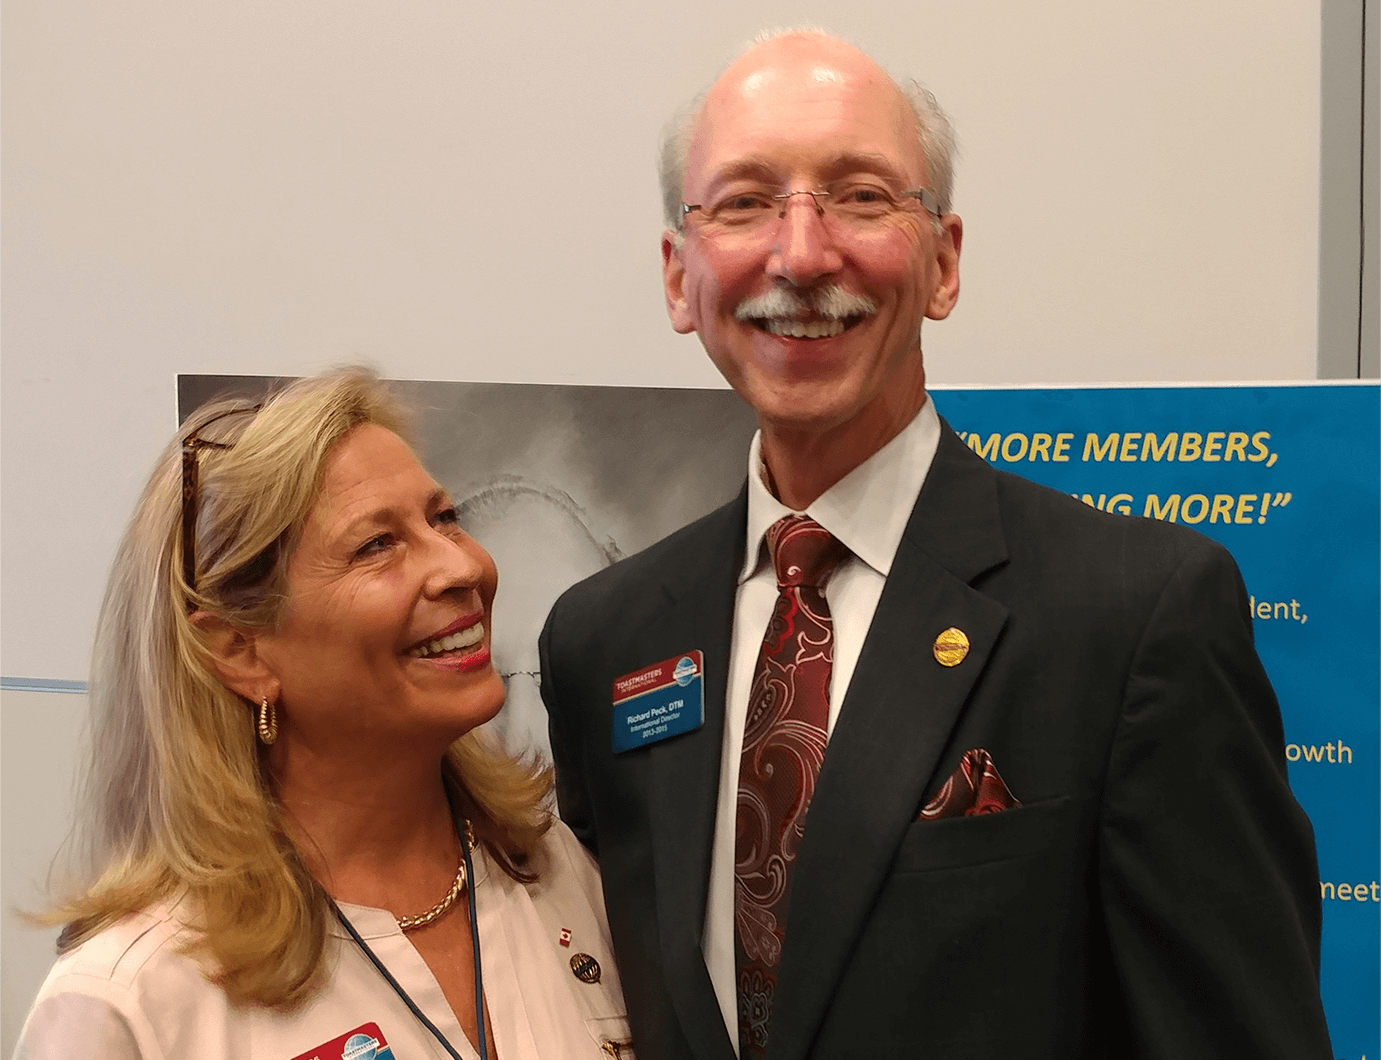 Bettyann Peck, DTM, smiles at her husband, Richard, during a Toastmasters event.